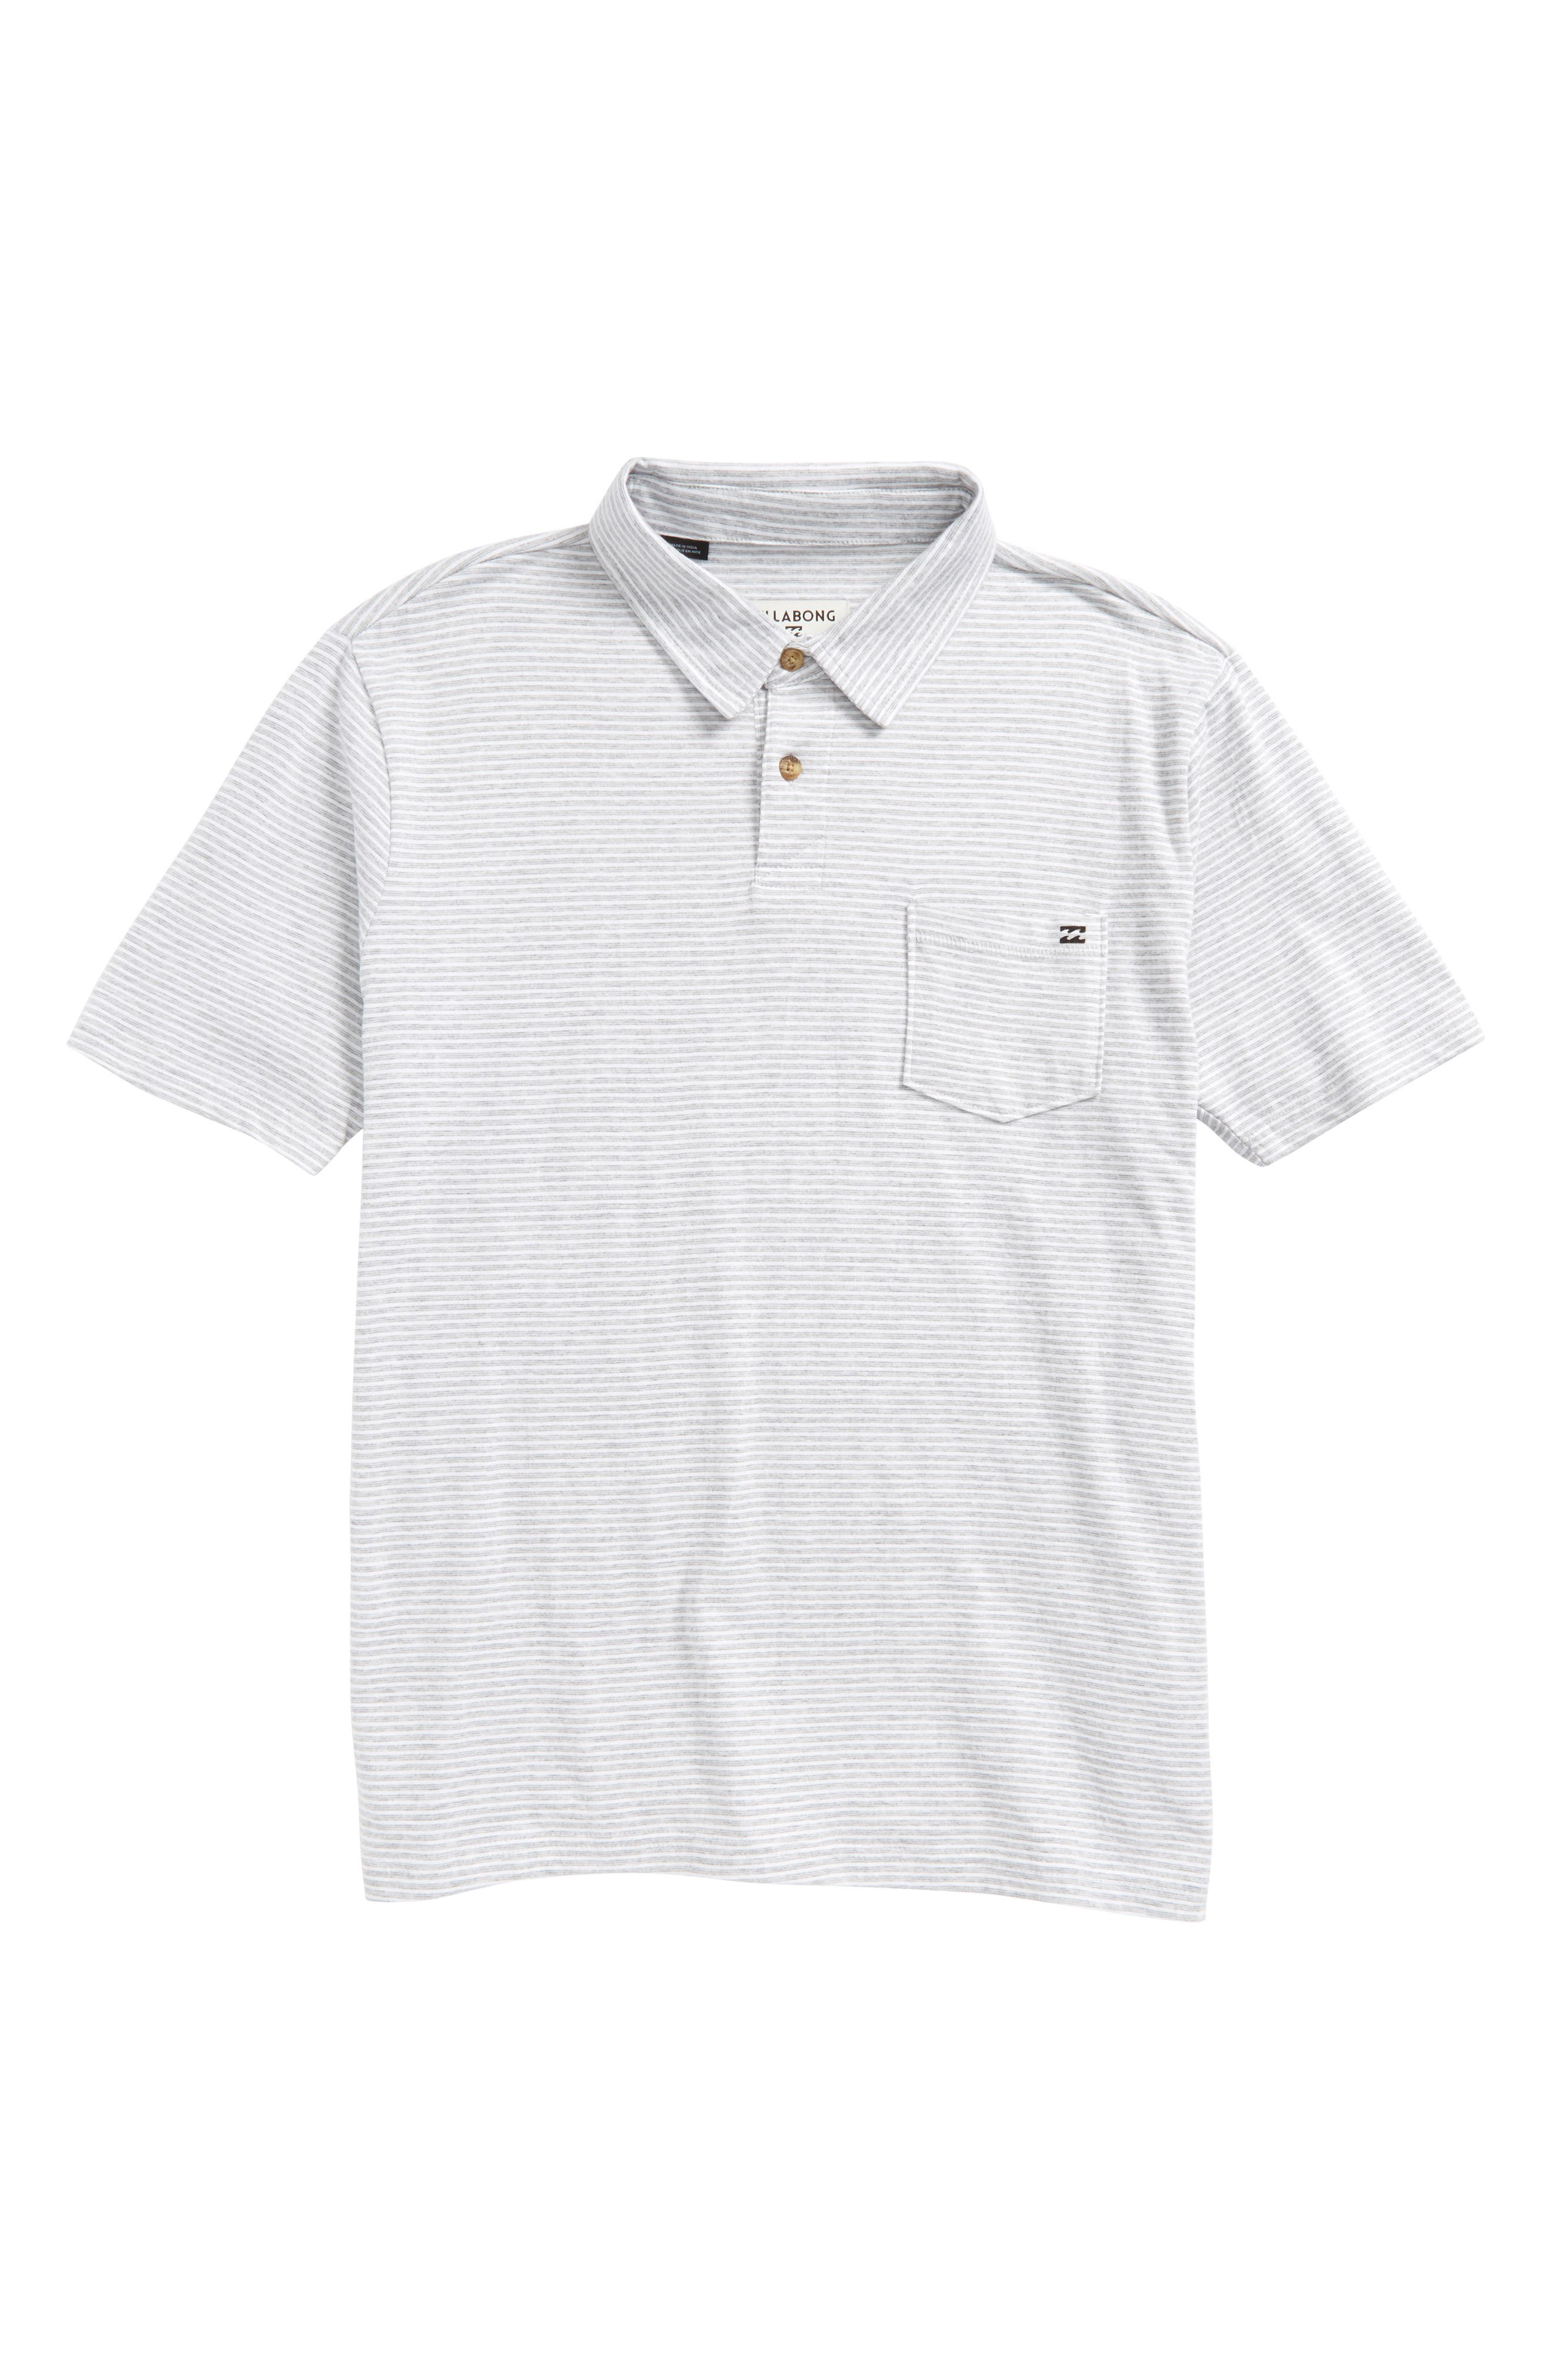 Standard Issue Jersey Polo,                         Main,                         color, Eggshell